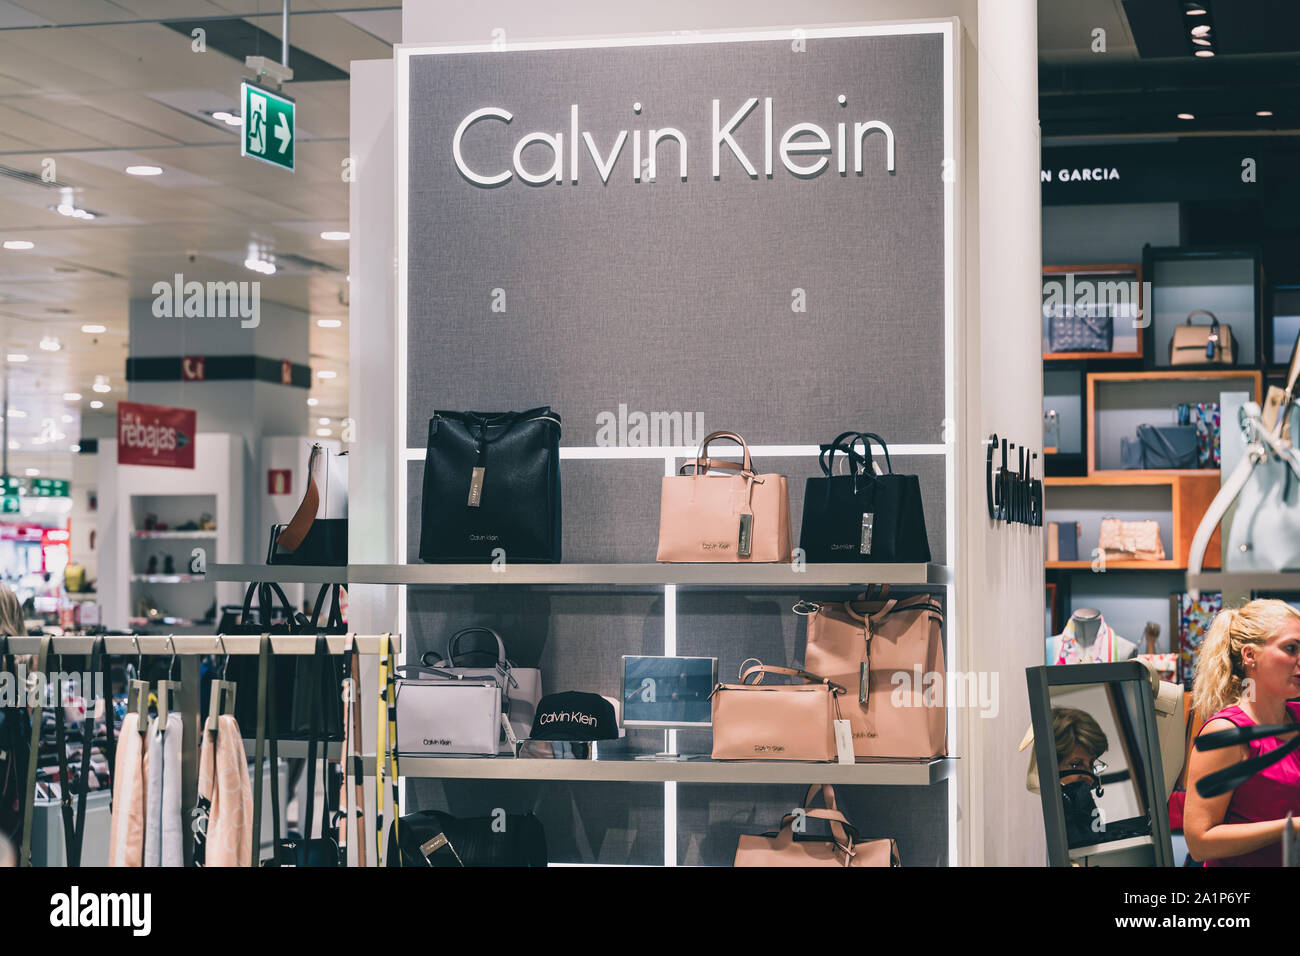 Calvin Klein Boutique High Resolution Stock Photography And Images Alamy